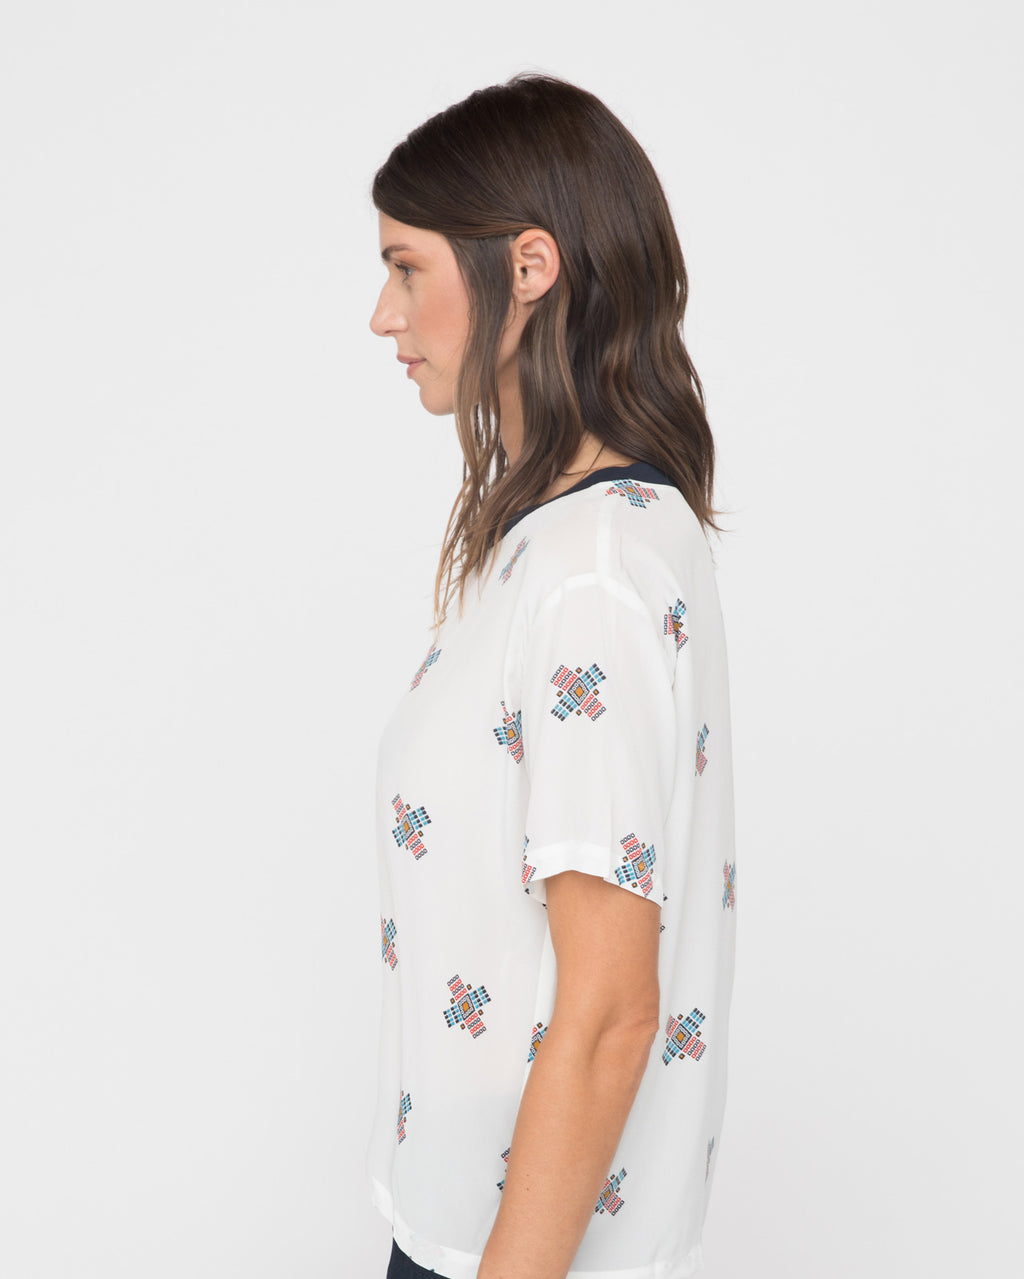 The Myra Top in Southwest Print